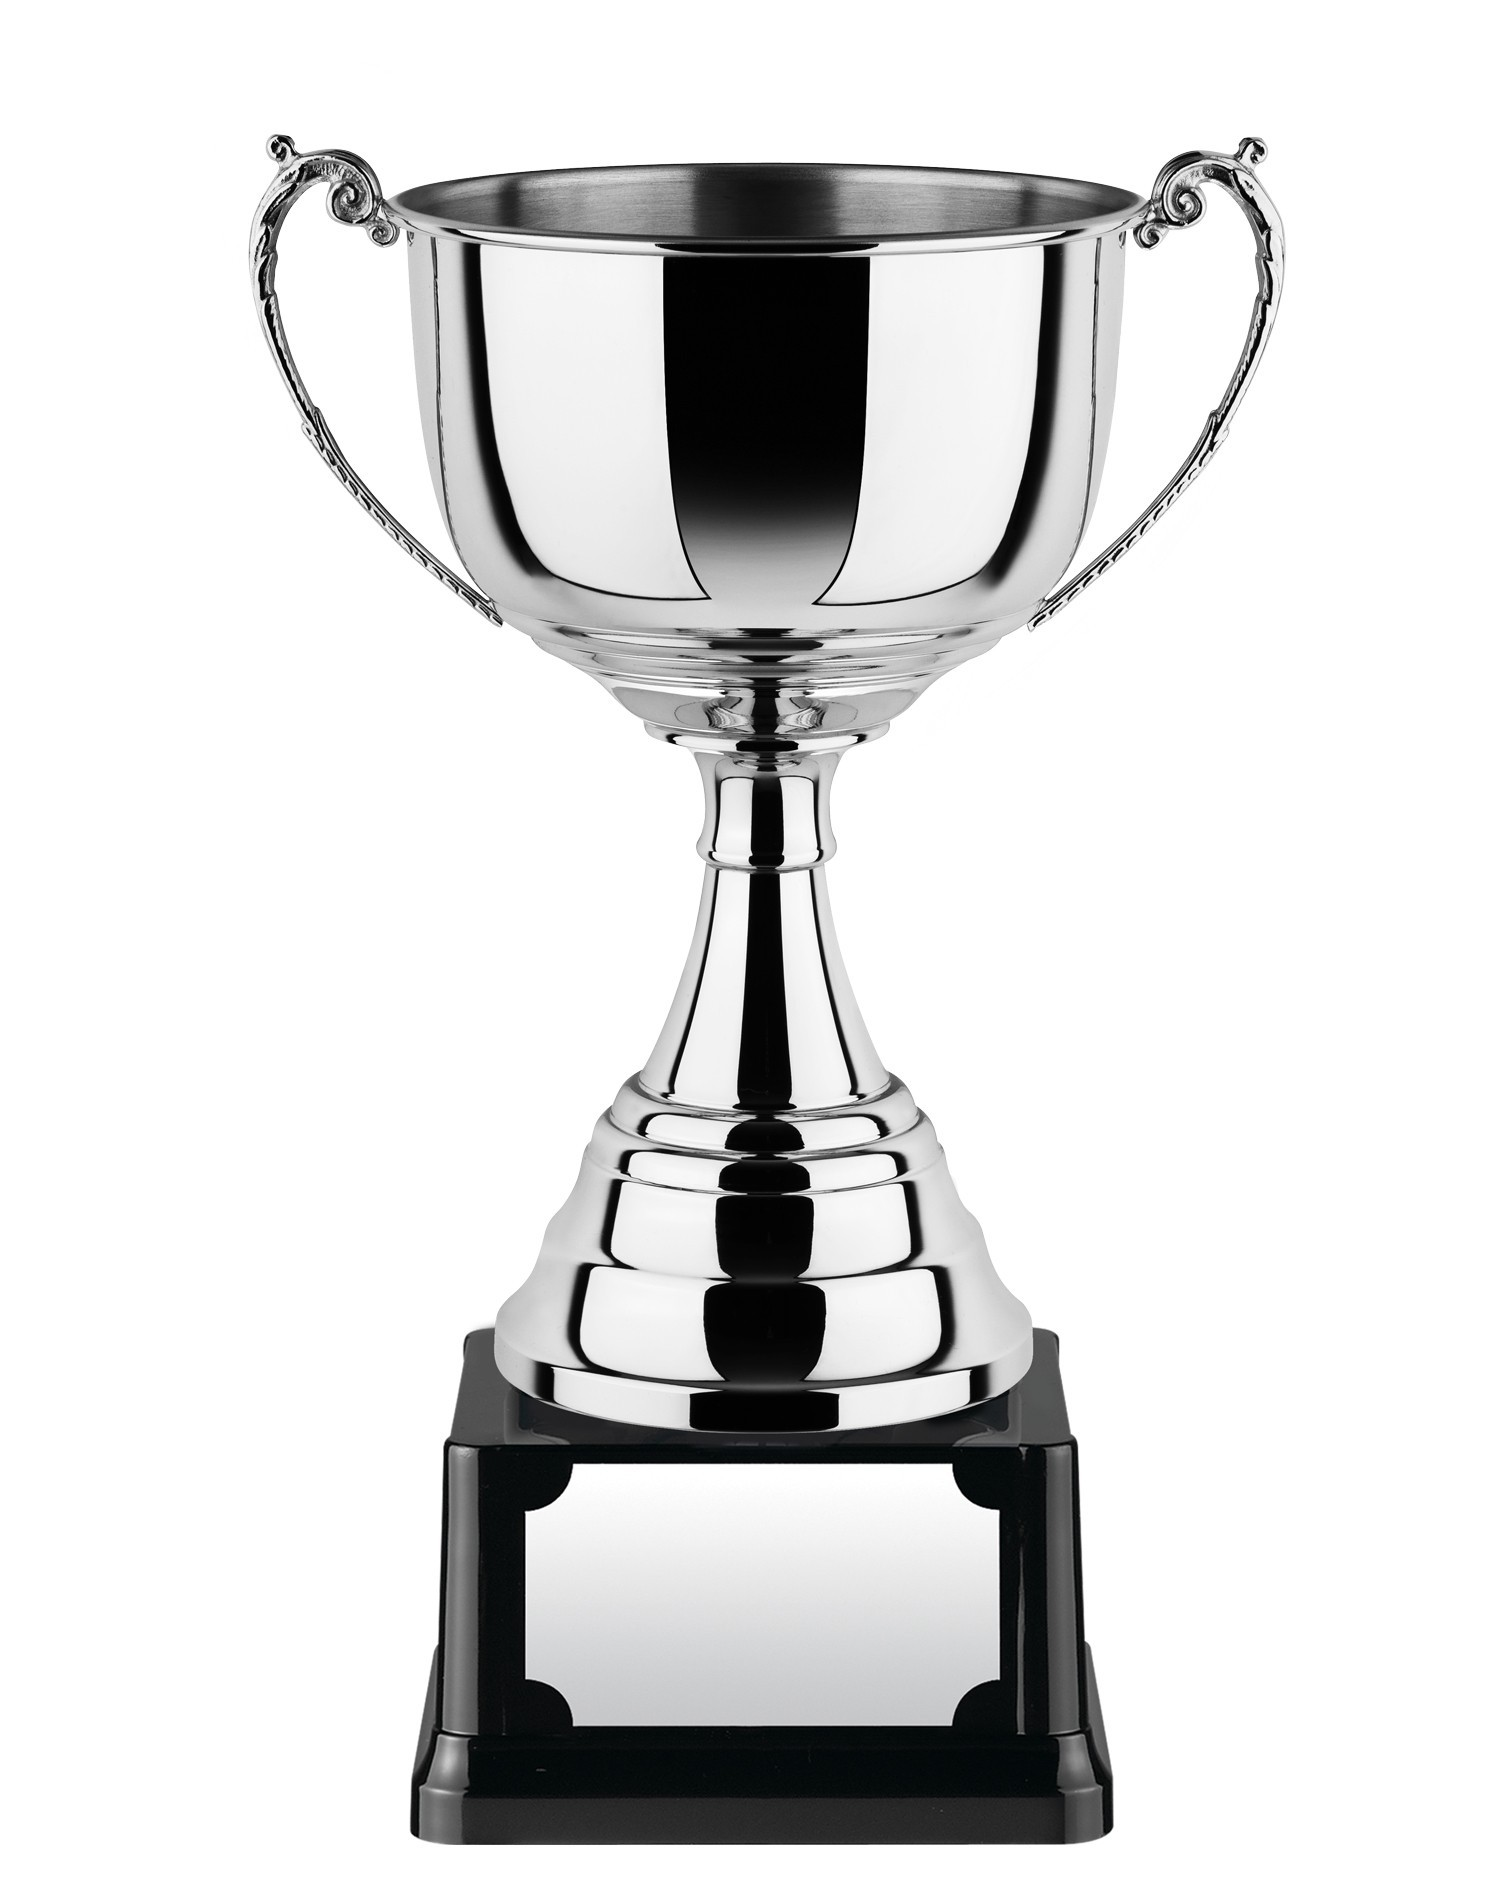 Nickle Plated Cup with Traditional Handles on Heavy Base